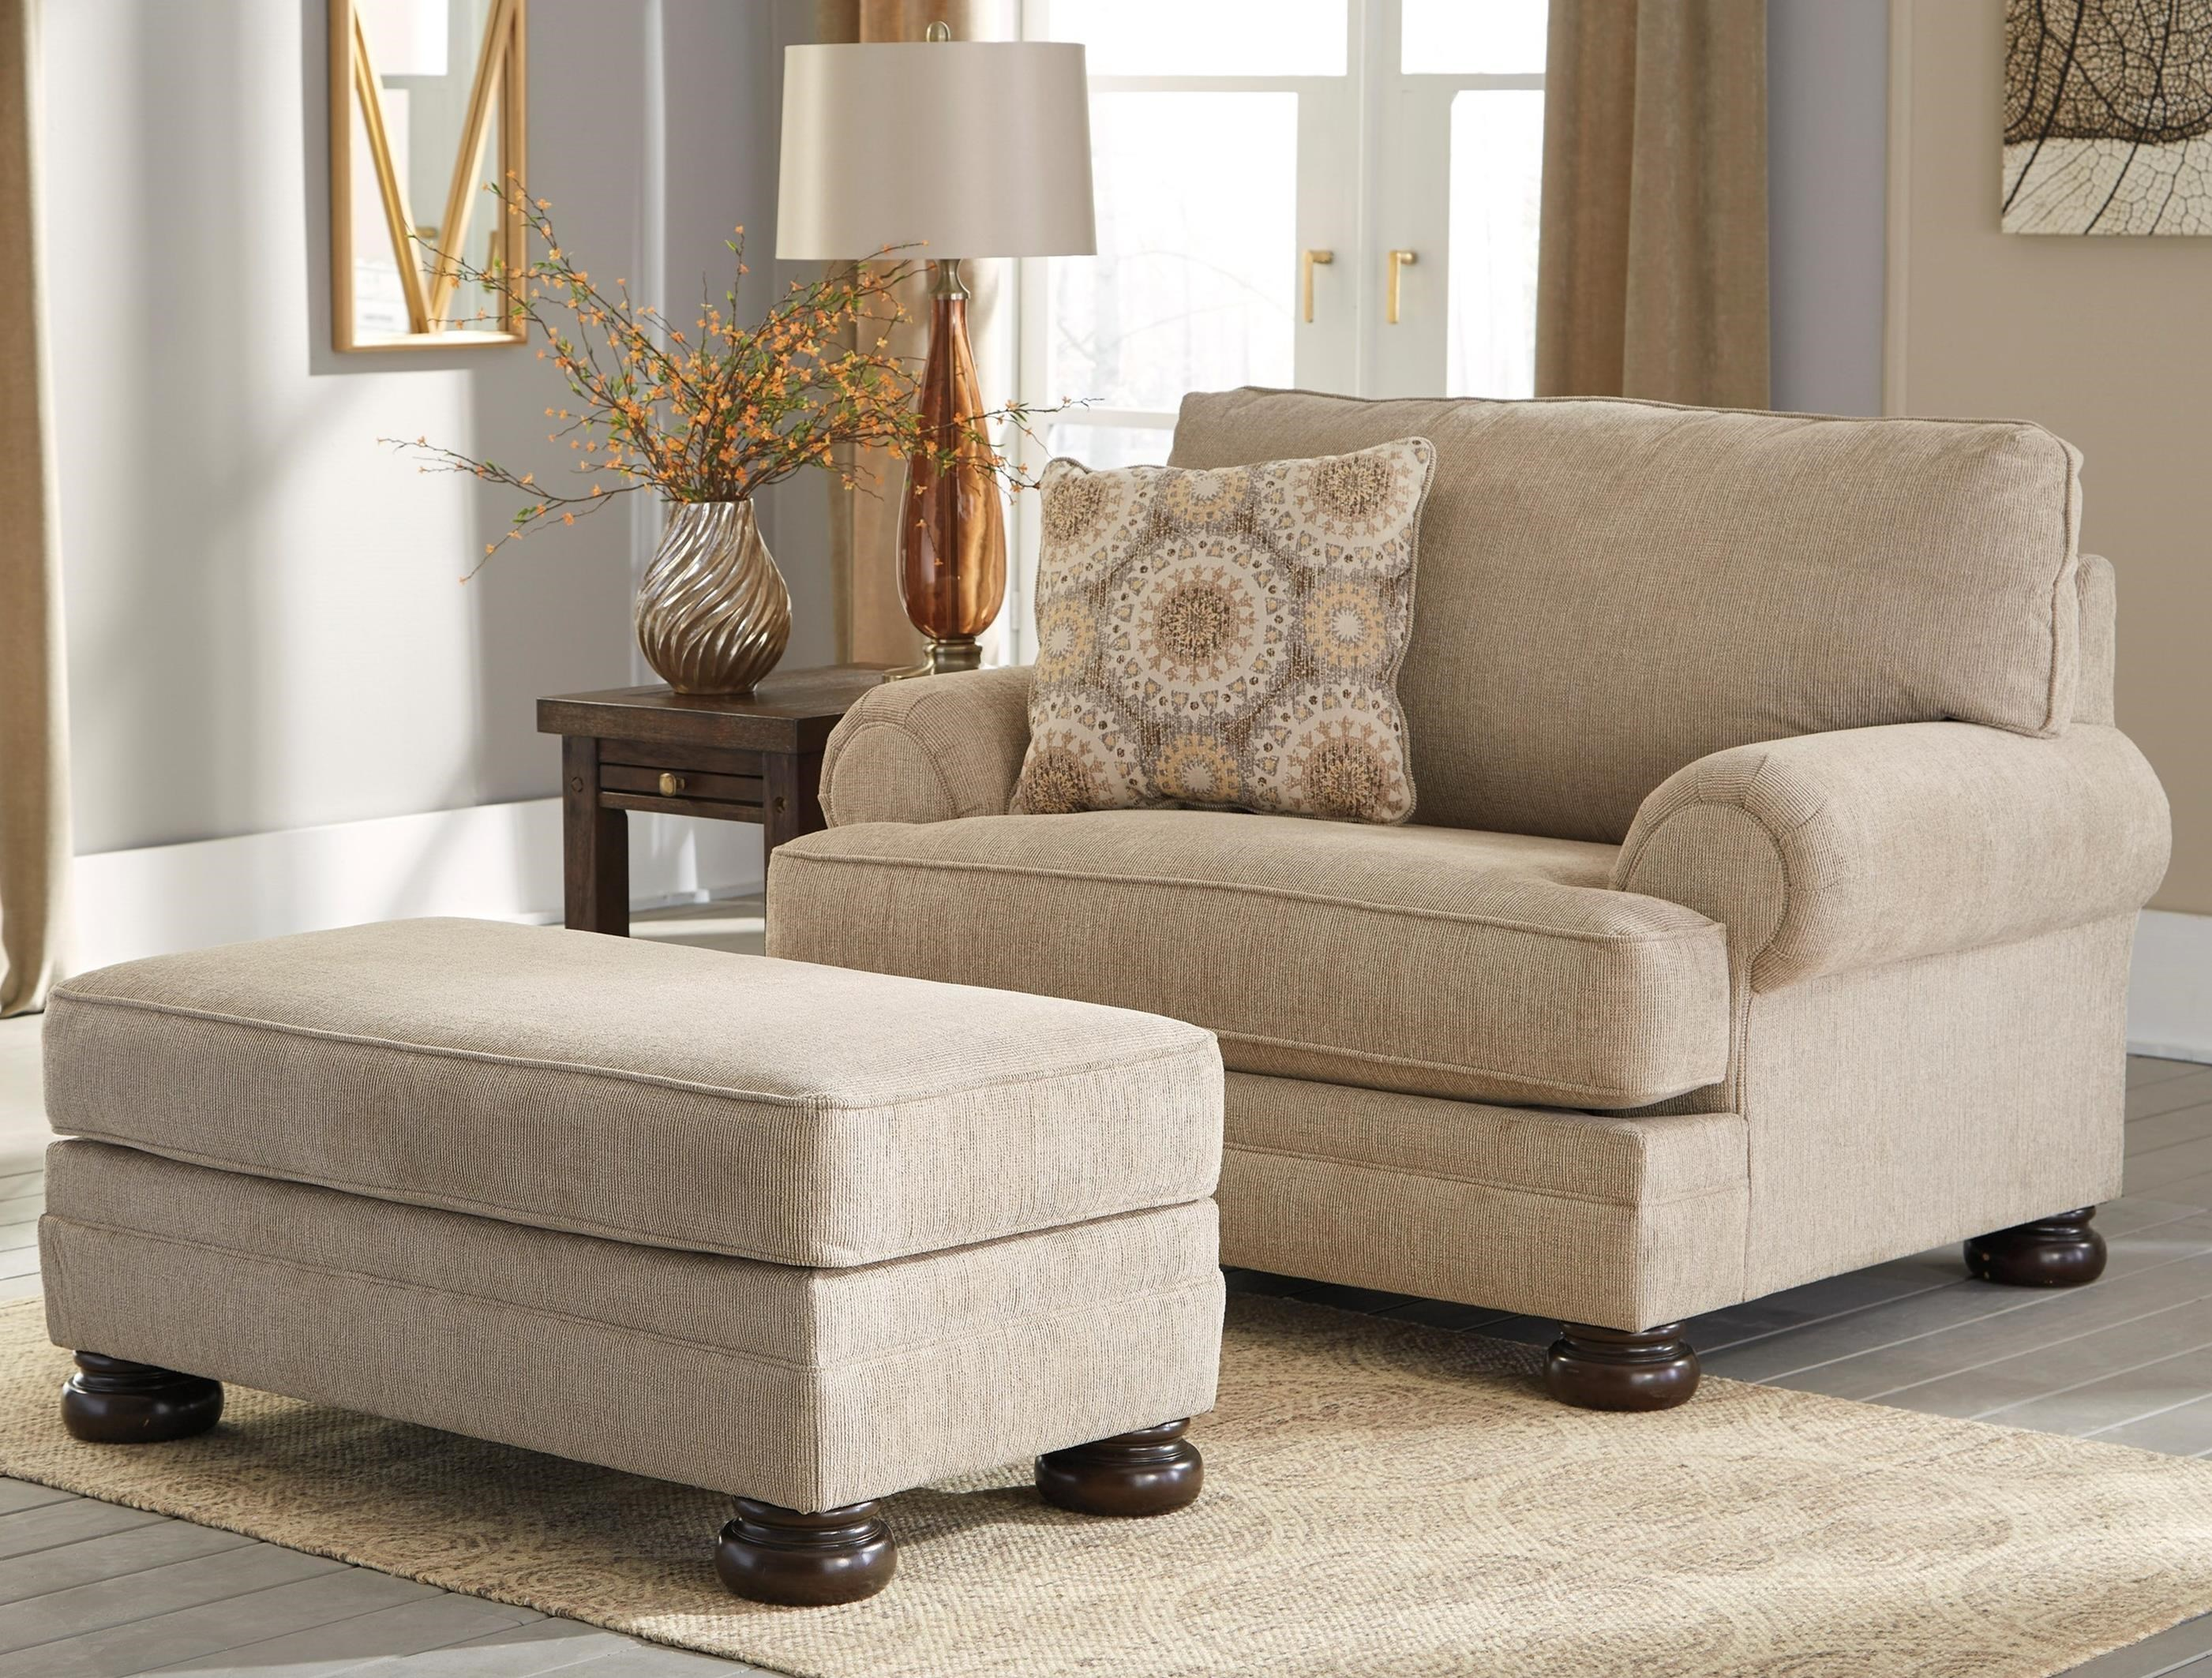 Benchcraft Quarry Hill Chair And A Half U0026 Ottoman